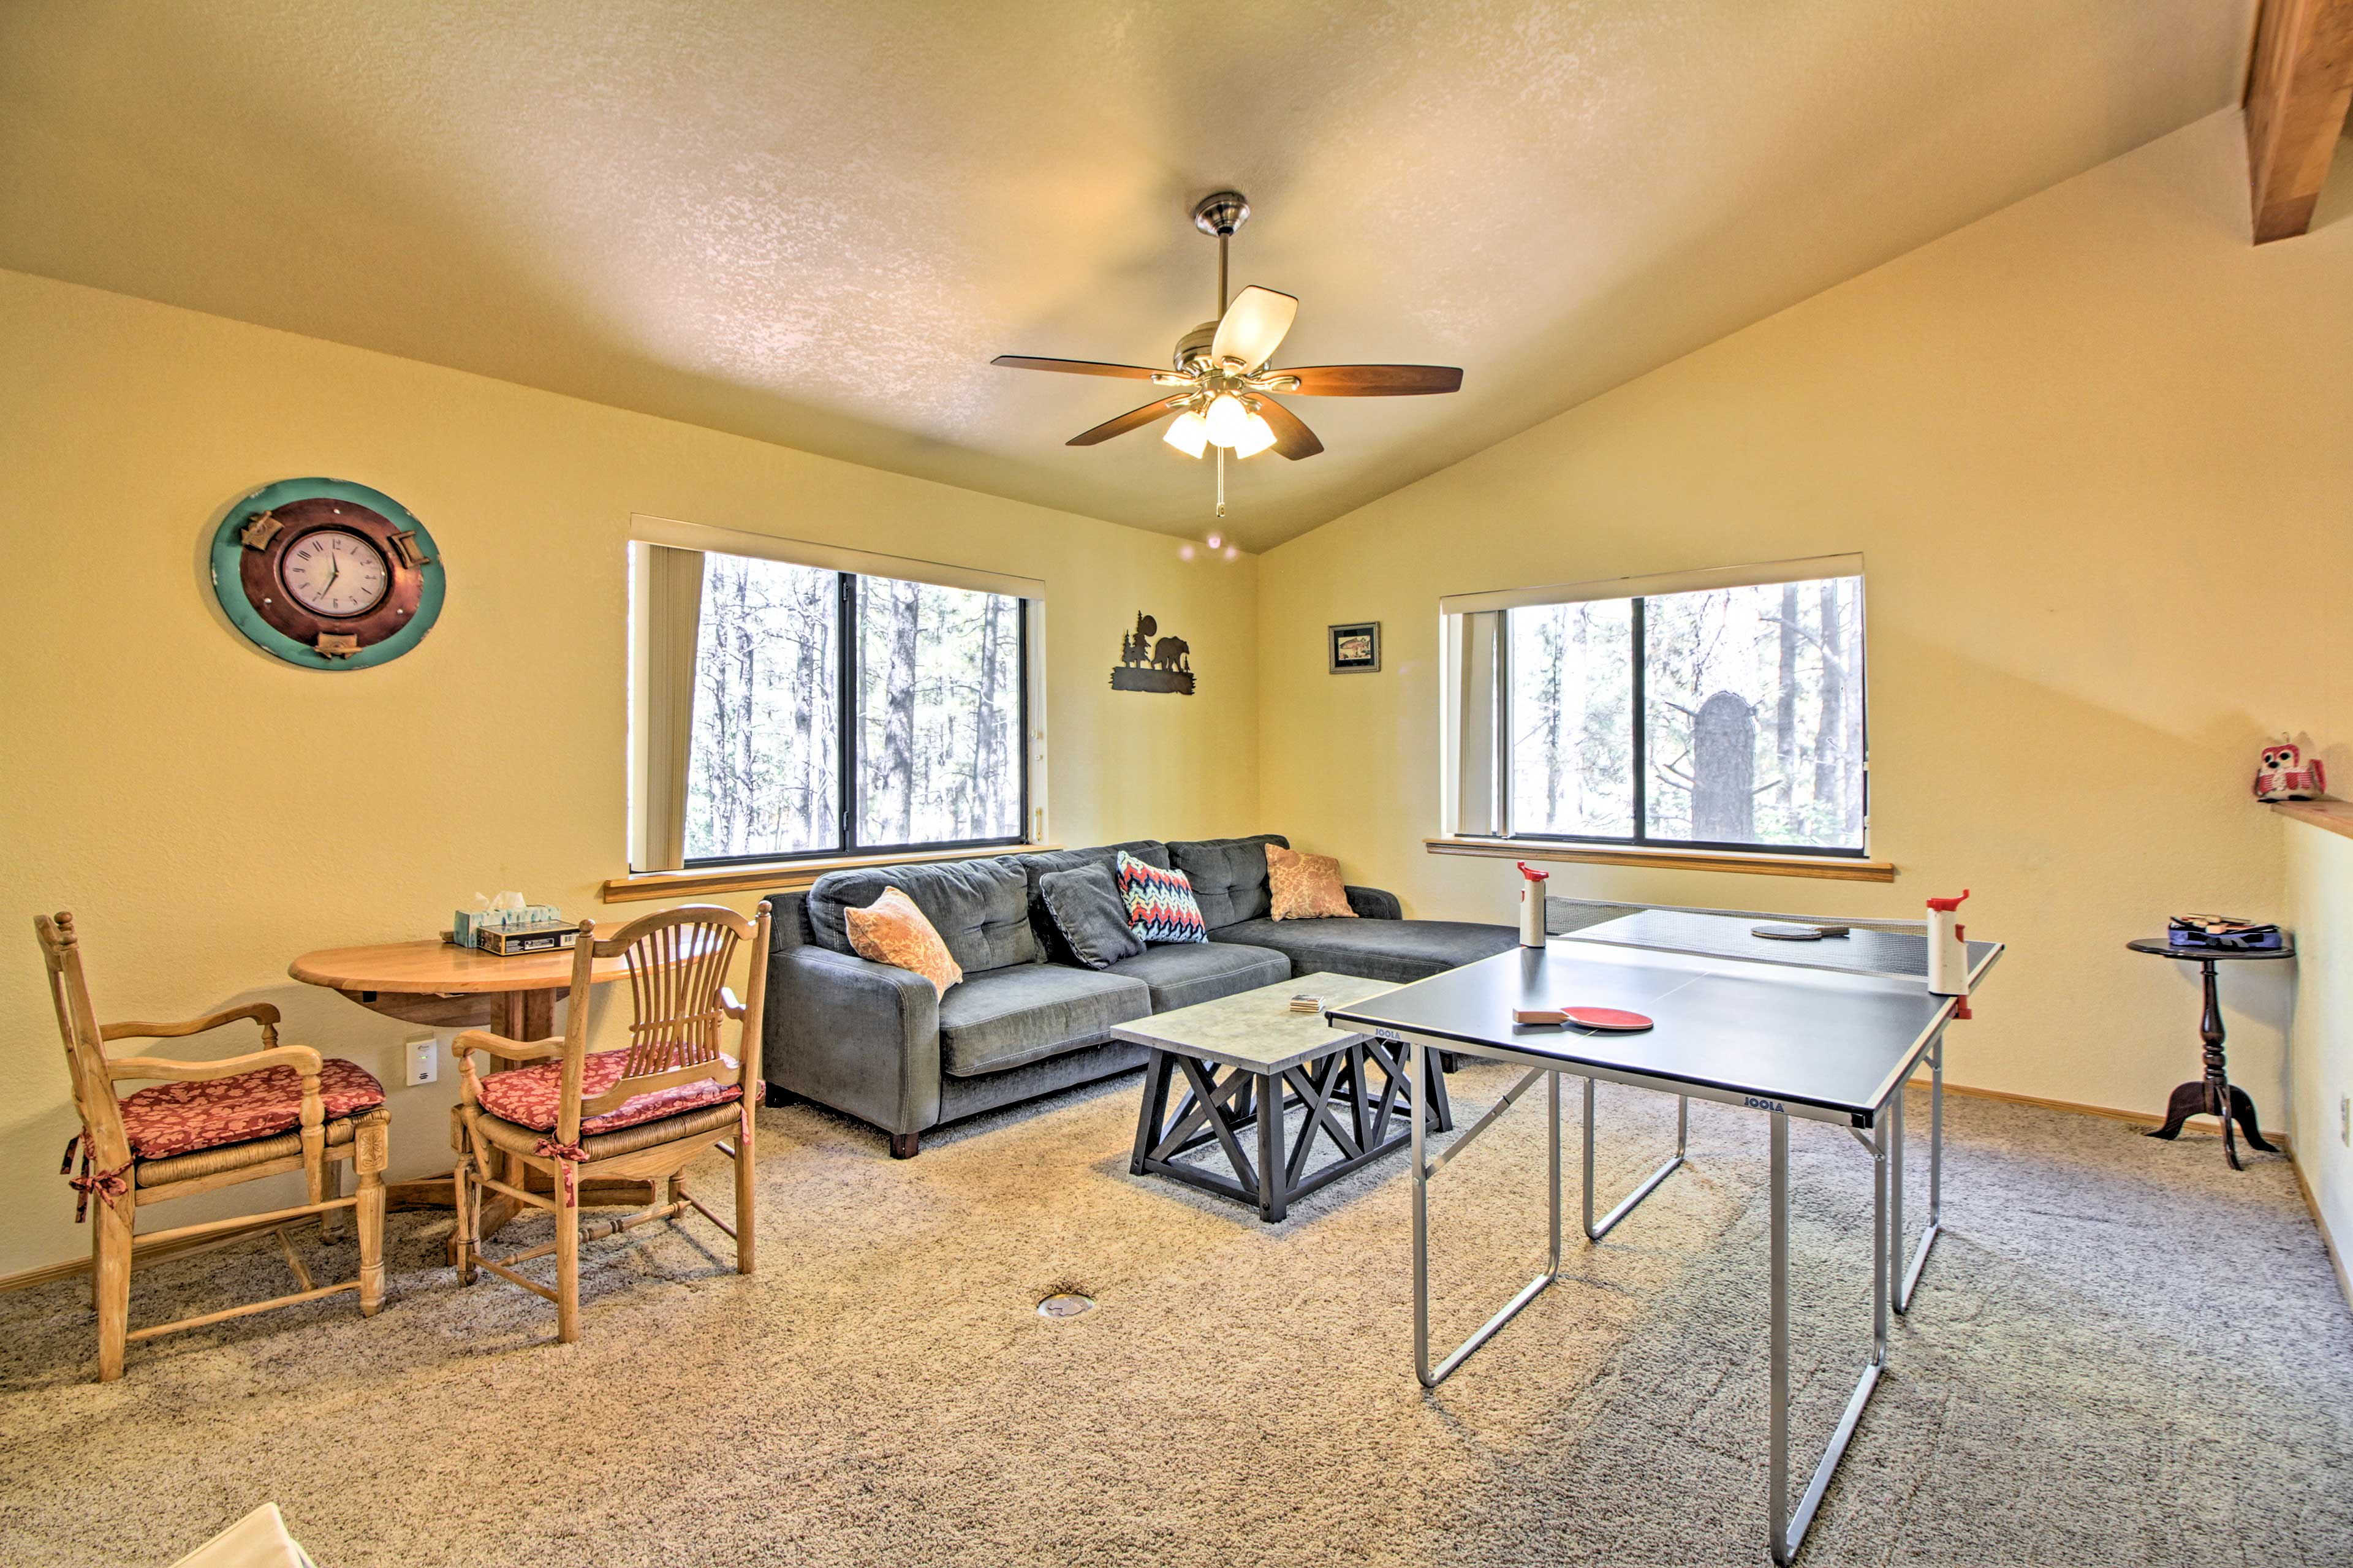 The home also boasts a game loft with table games and comfy seating!